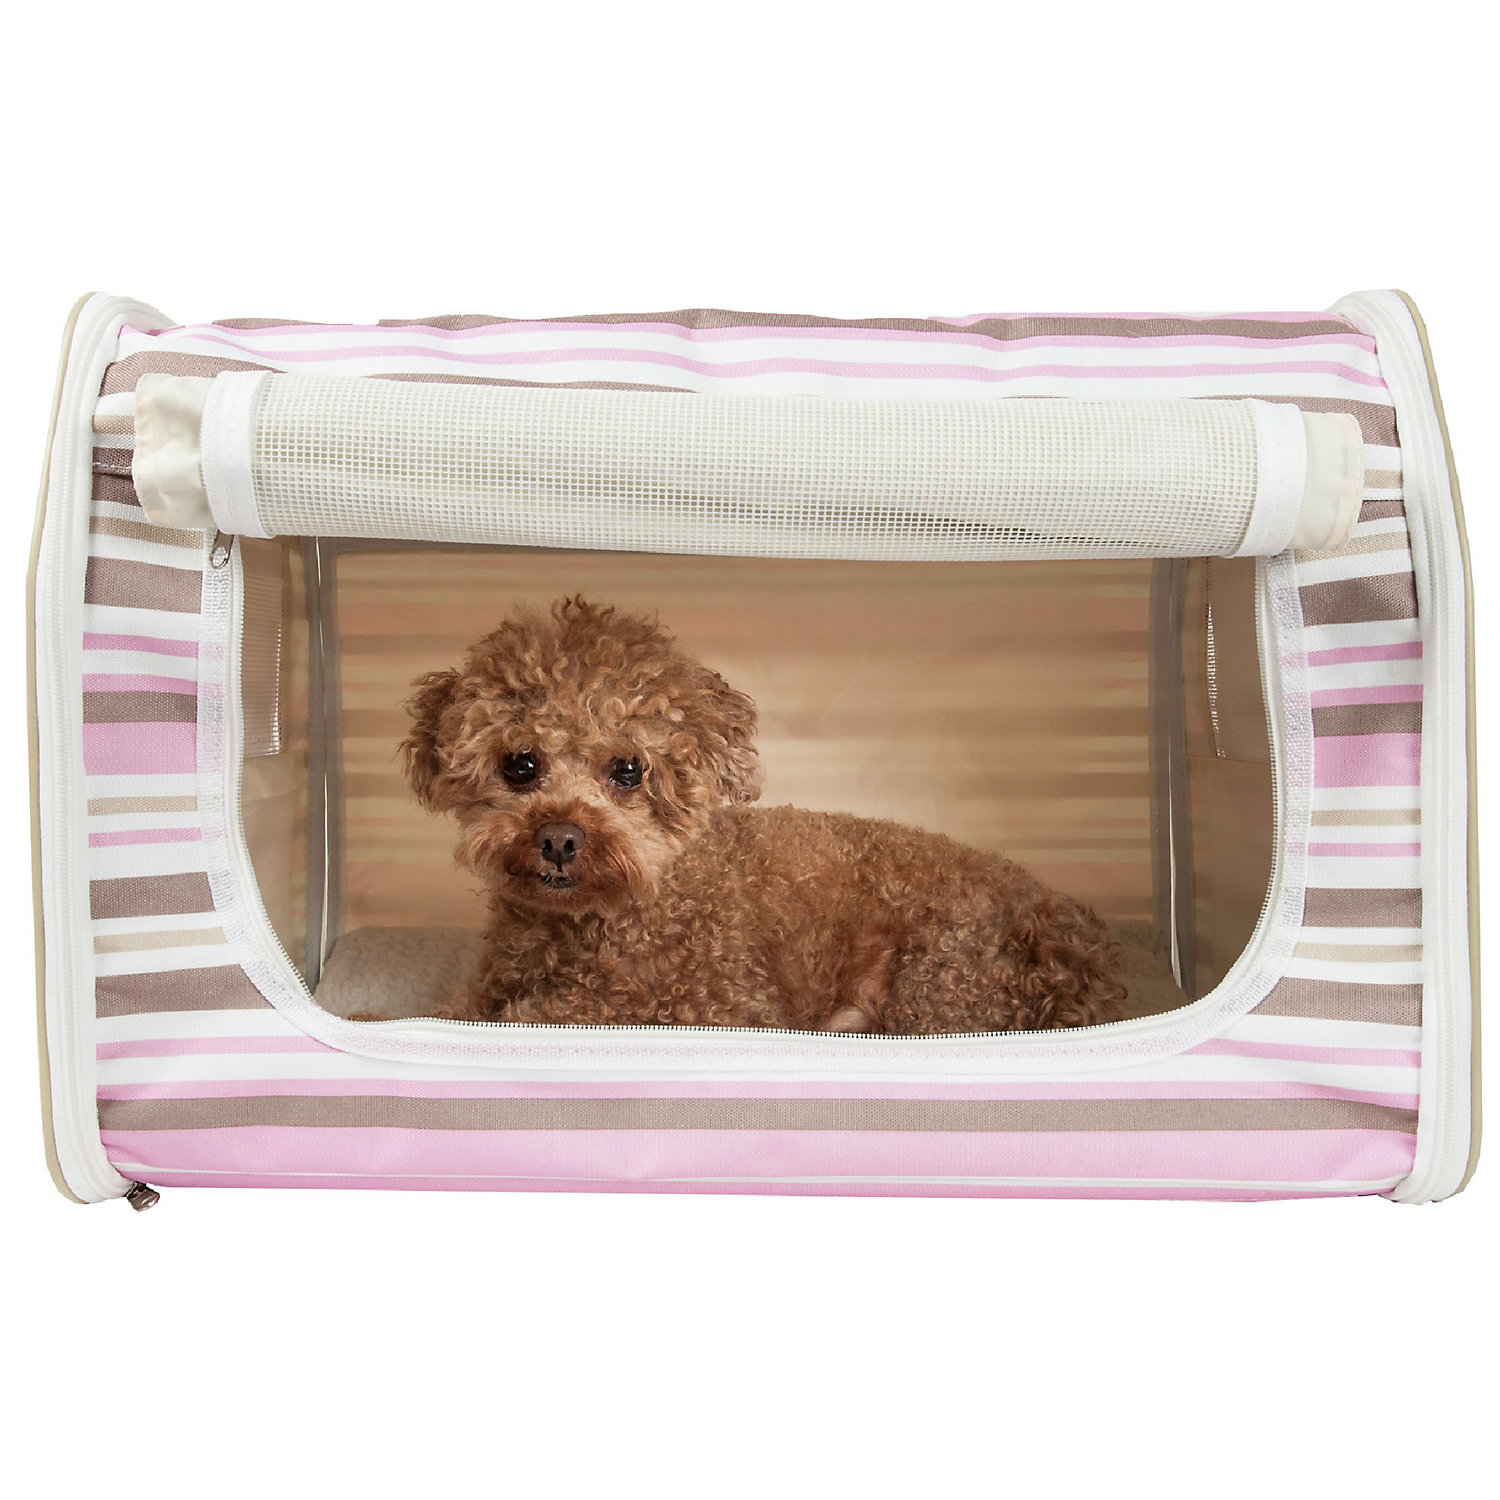 Pet Life Folding Zippered Lightweight WireFramed Easy Folding Pet Crate